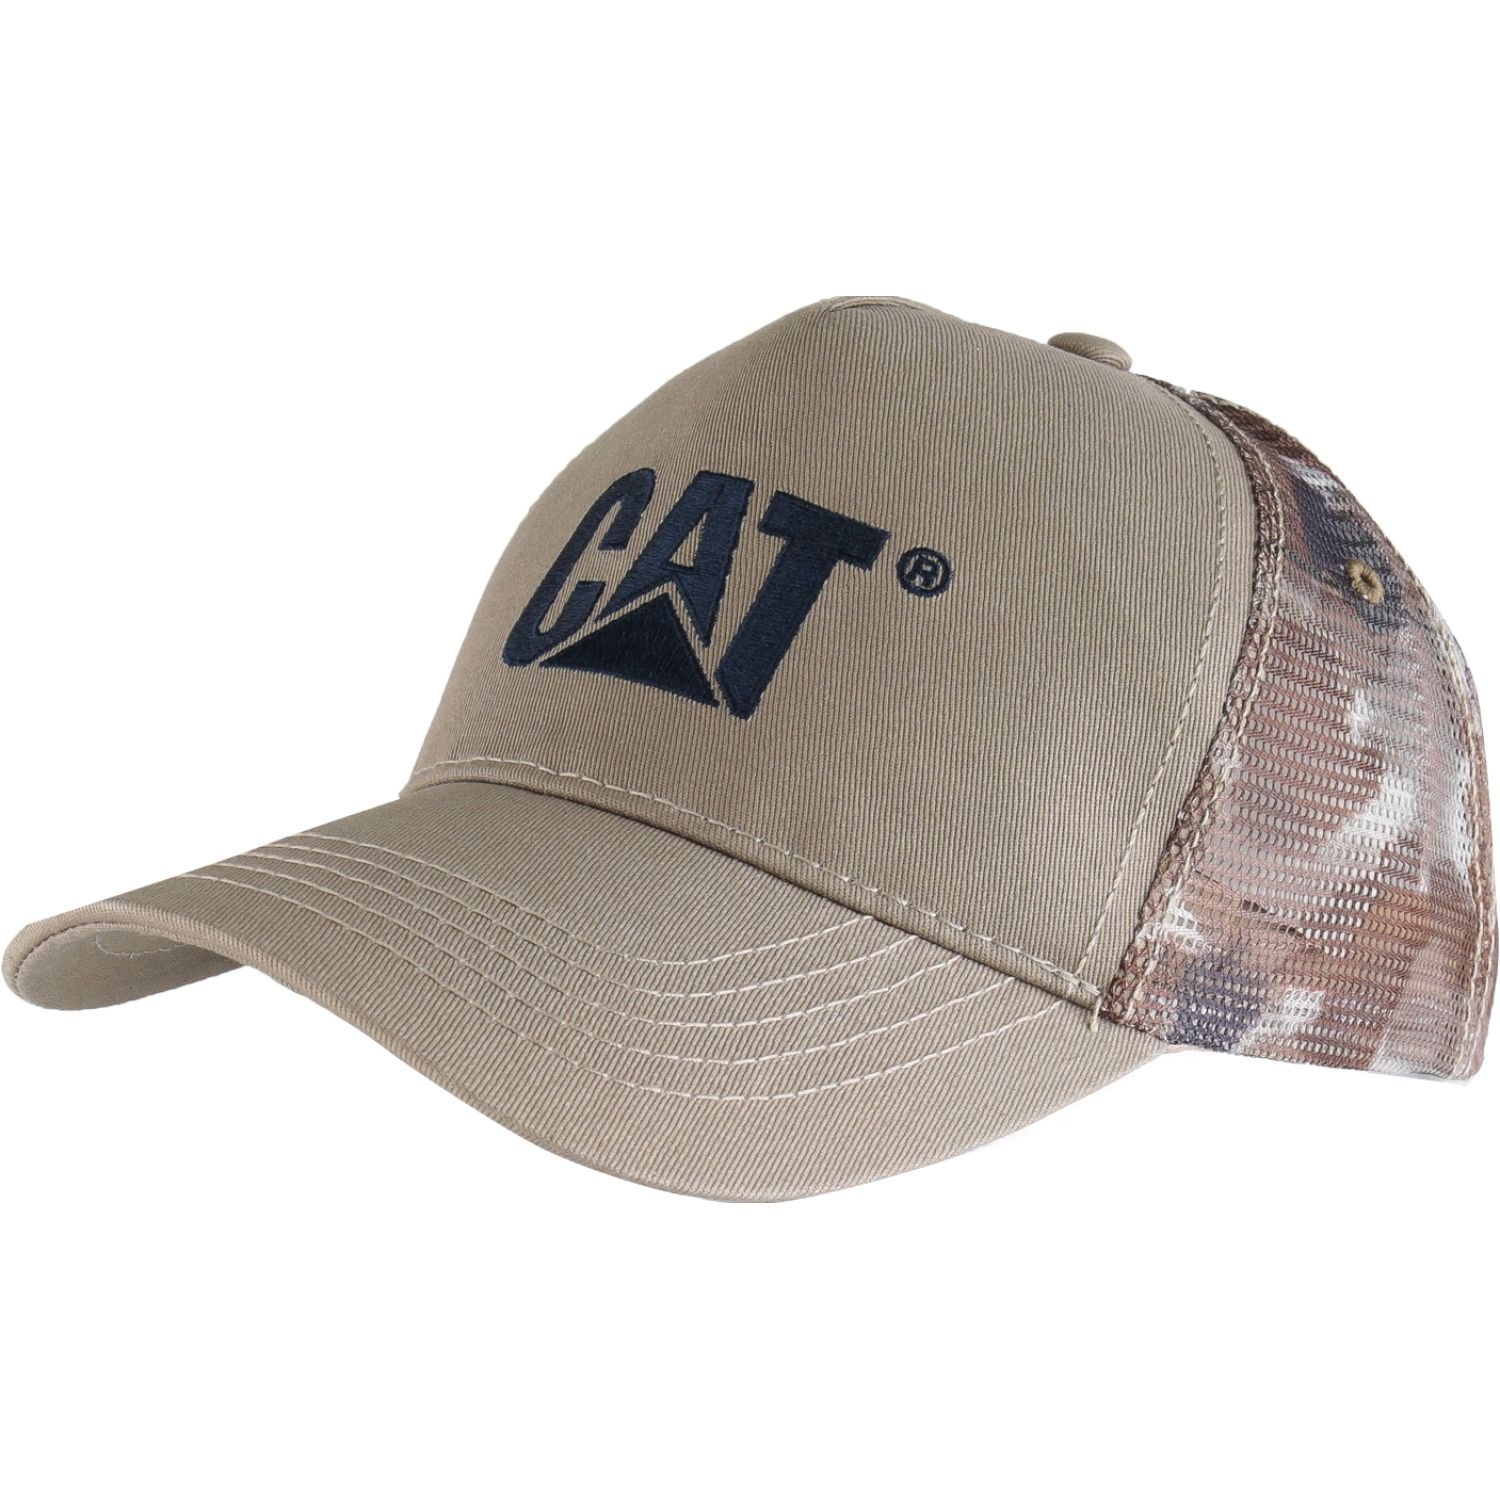 CAT design mark mesh hat Crema